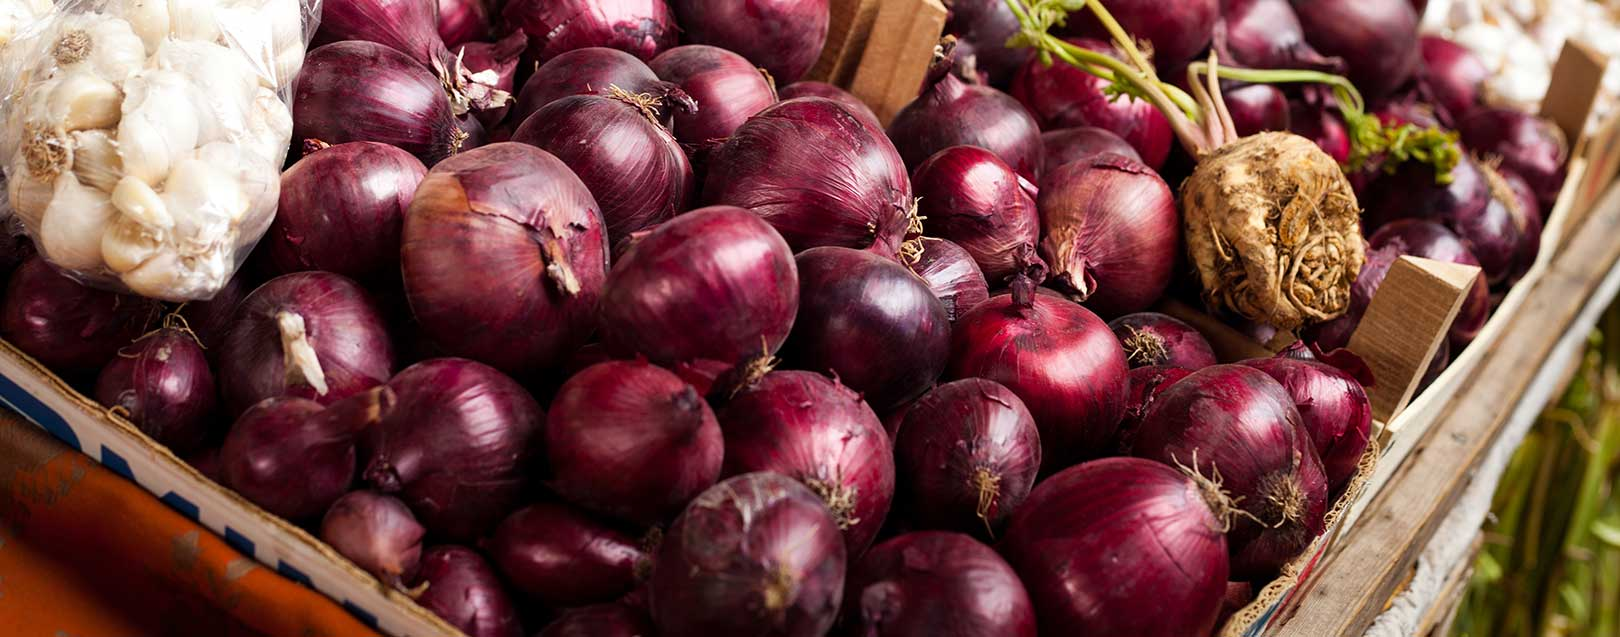 Centre to procure 2 lakh tonne onions from MP